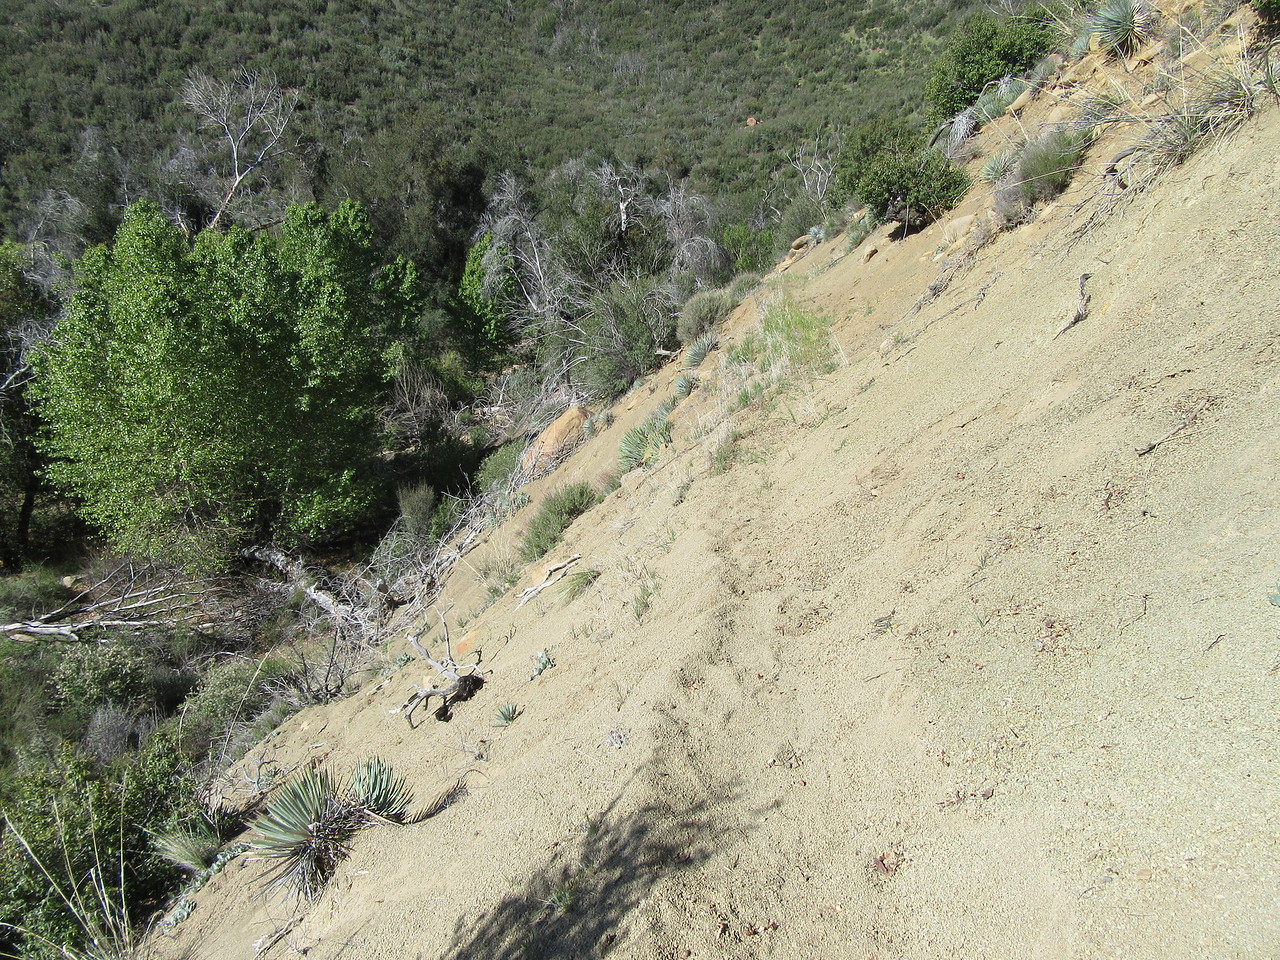 ... sometimes with a little trail slippage, ...